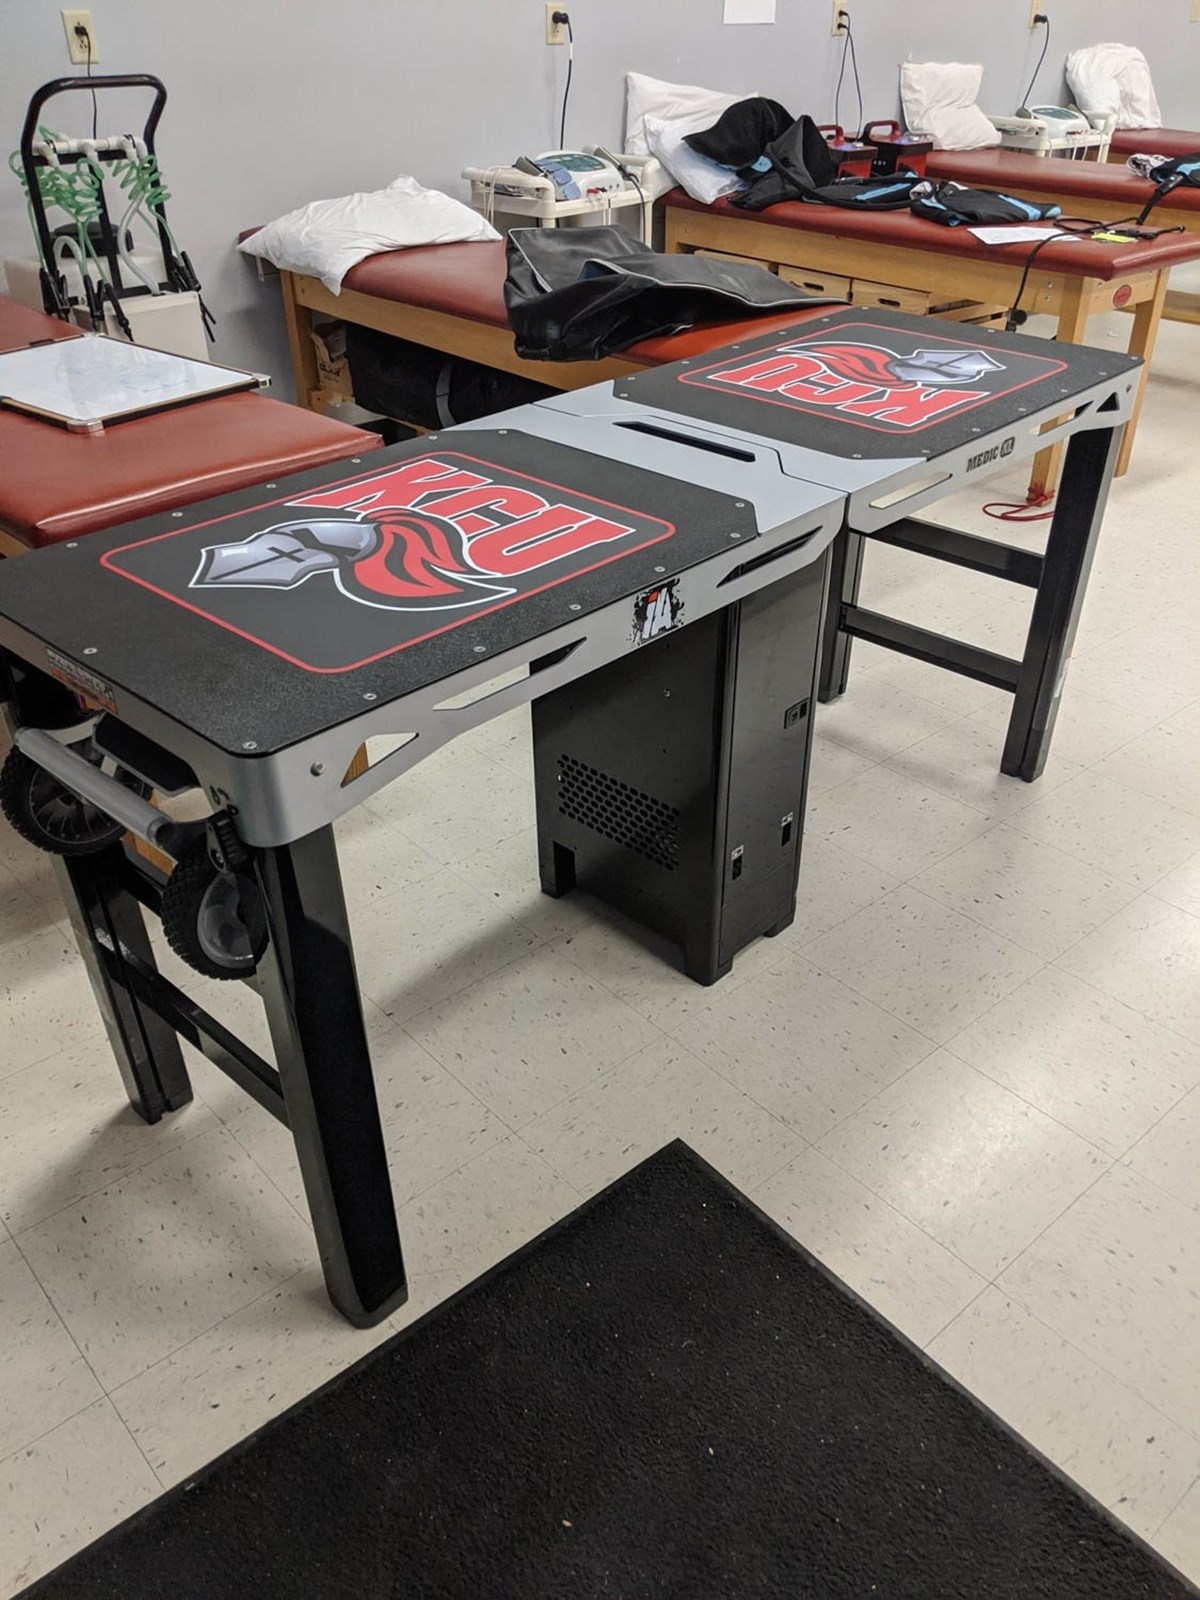 Medic XL athletic training table at Kentucky Christian University